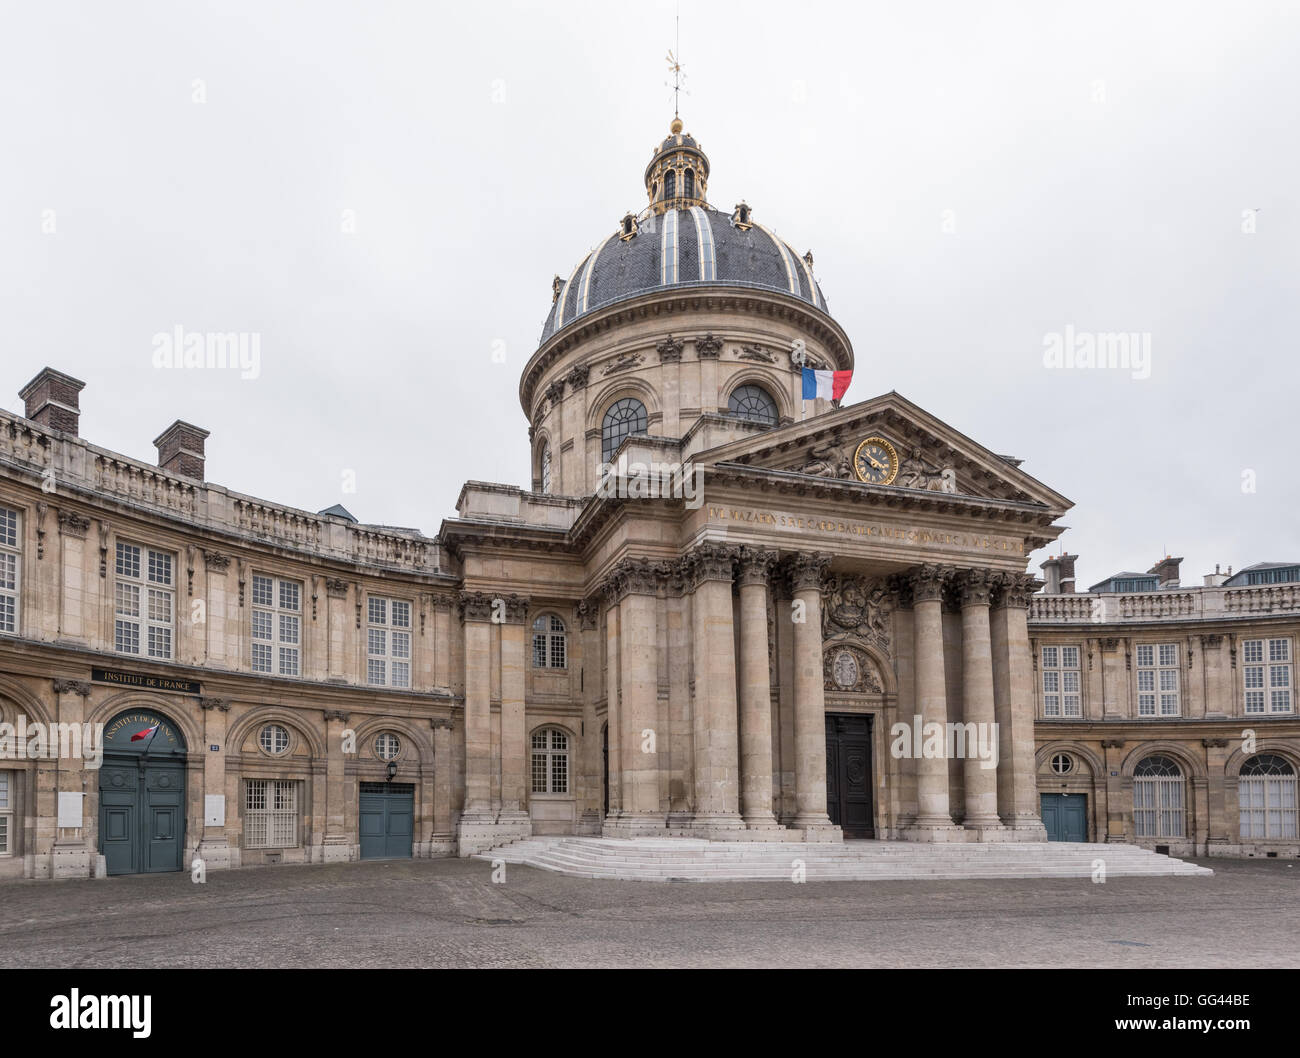 Paris, France March 26, 2016: Institut de France facade on an overcast day - Stock Image